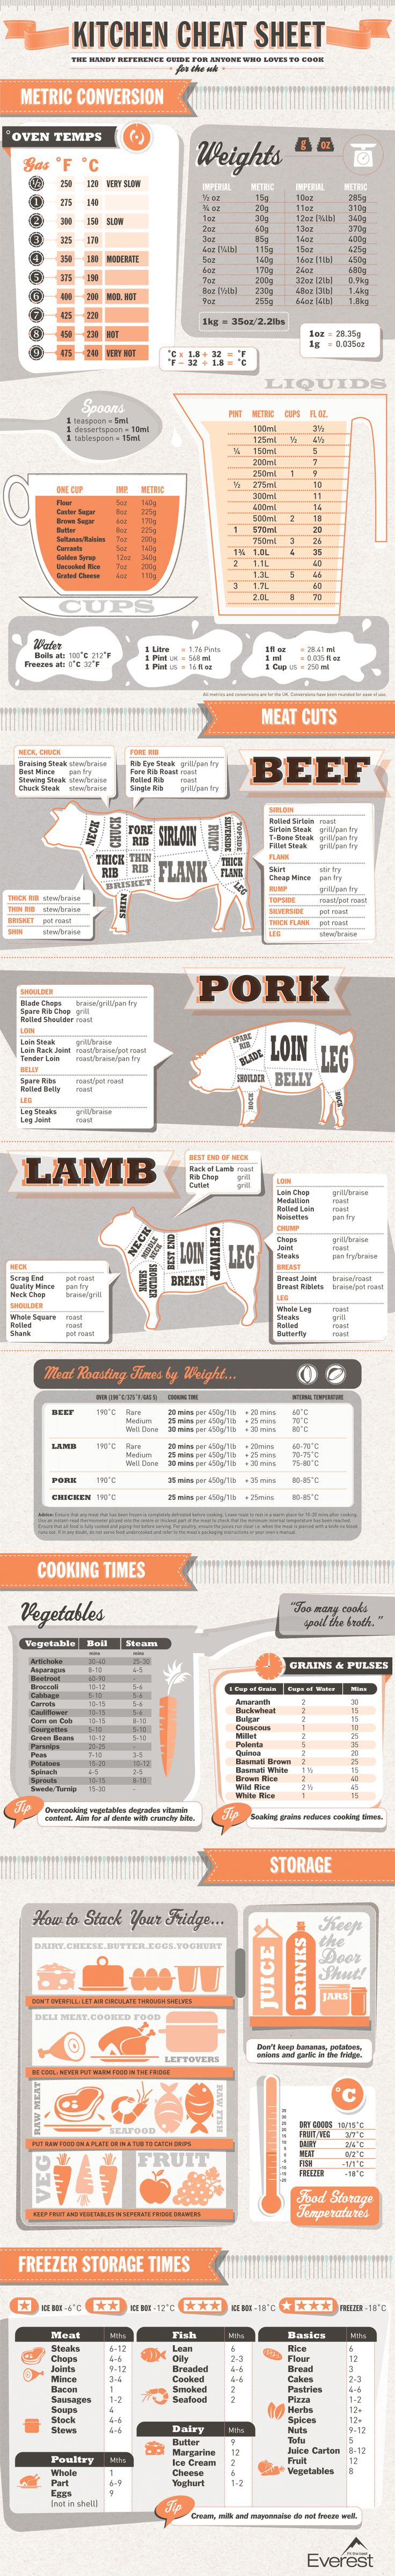 kitchen cheat sheet - genius!